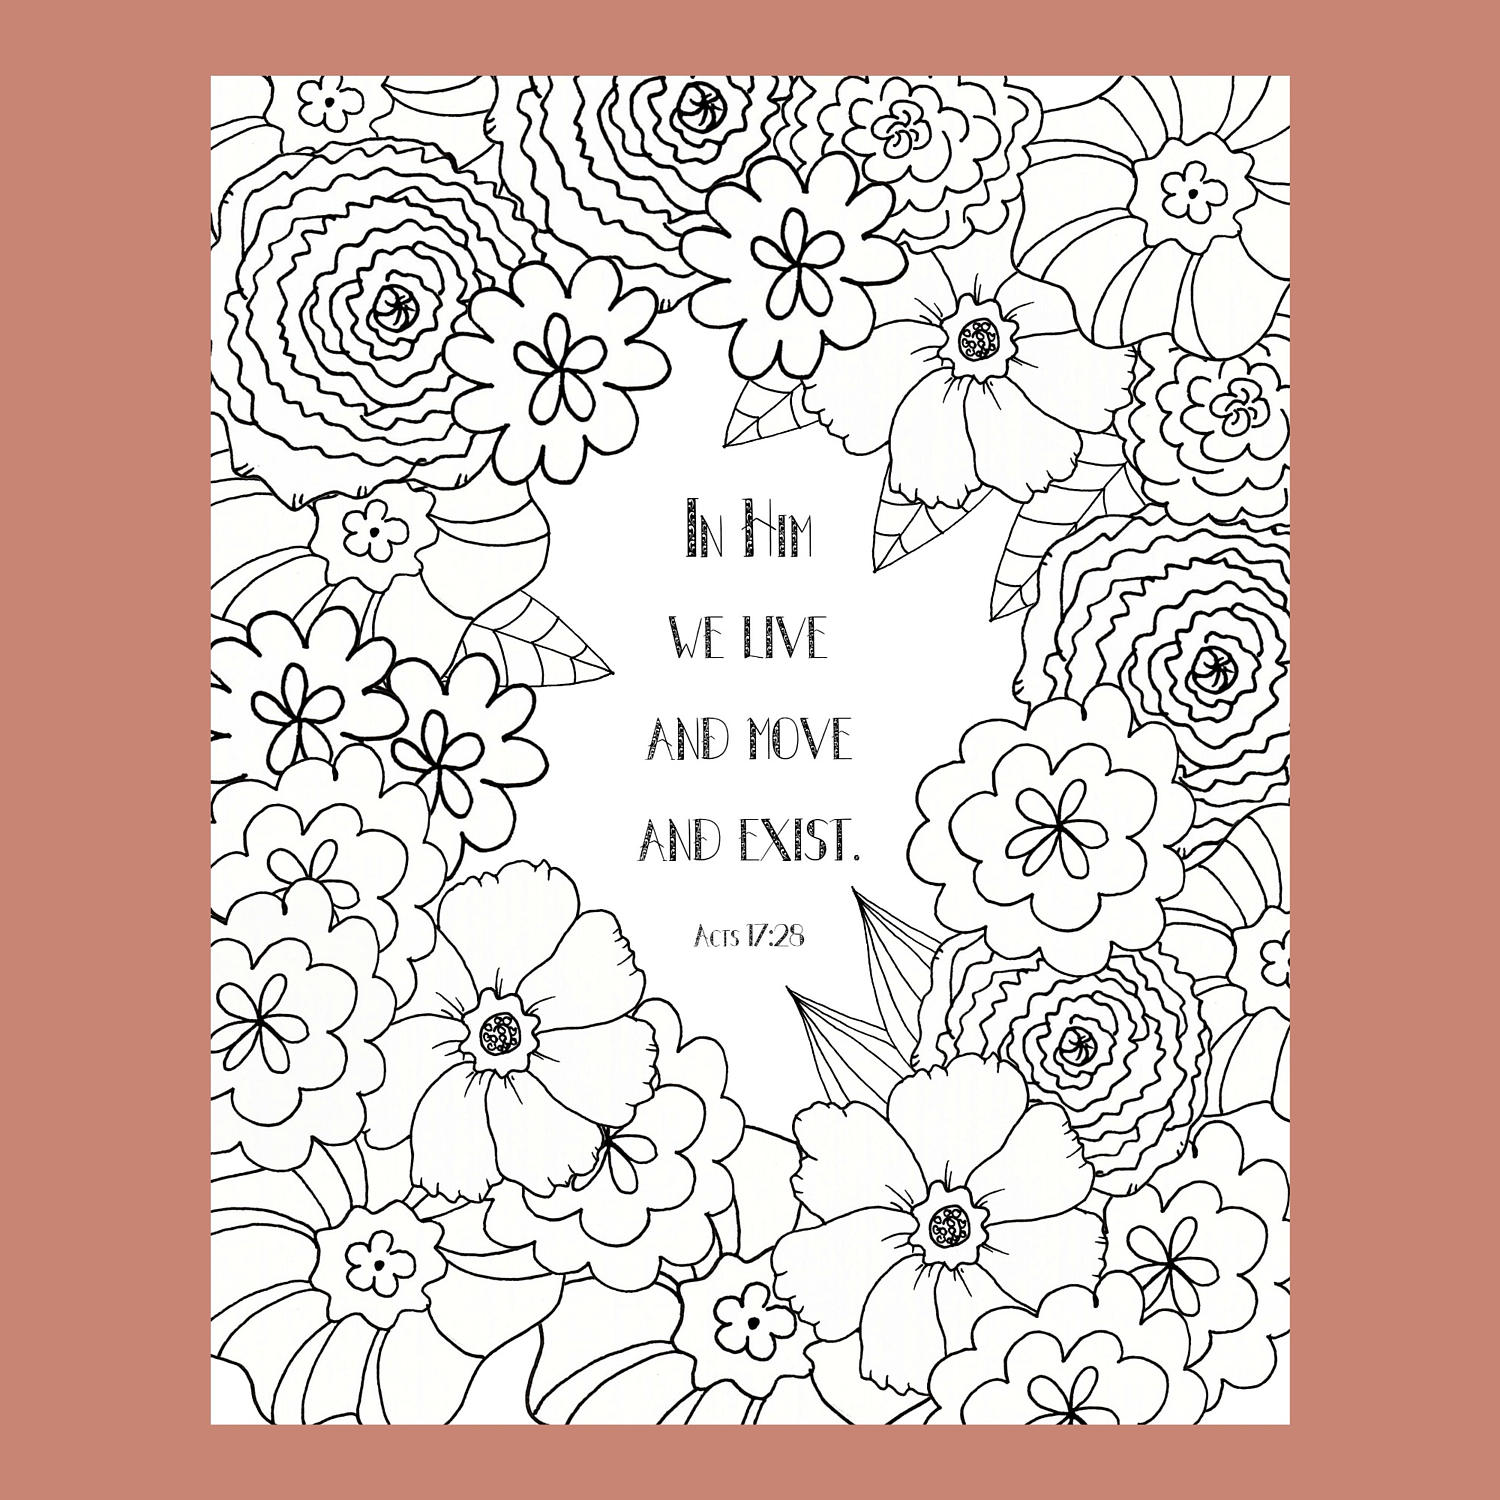 Acts 1725 Coloring Page Bible Verse Christian Scripture Floral